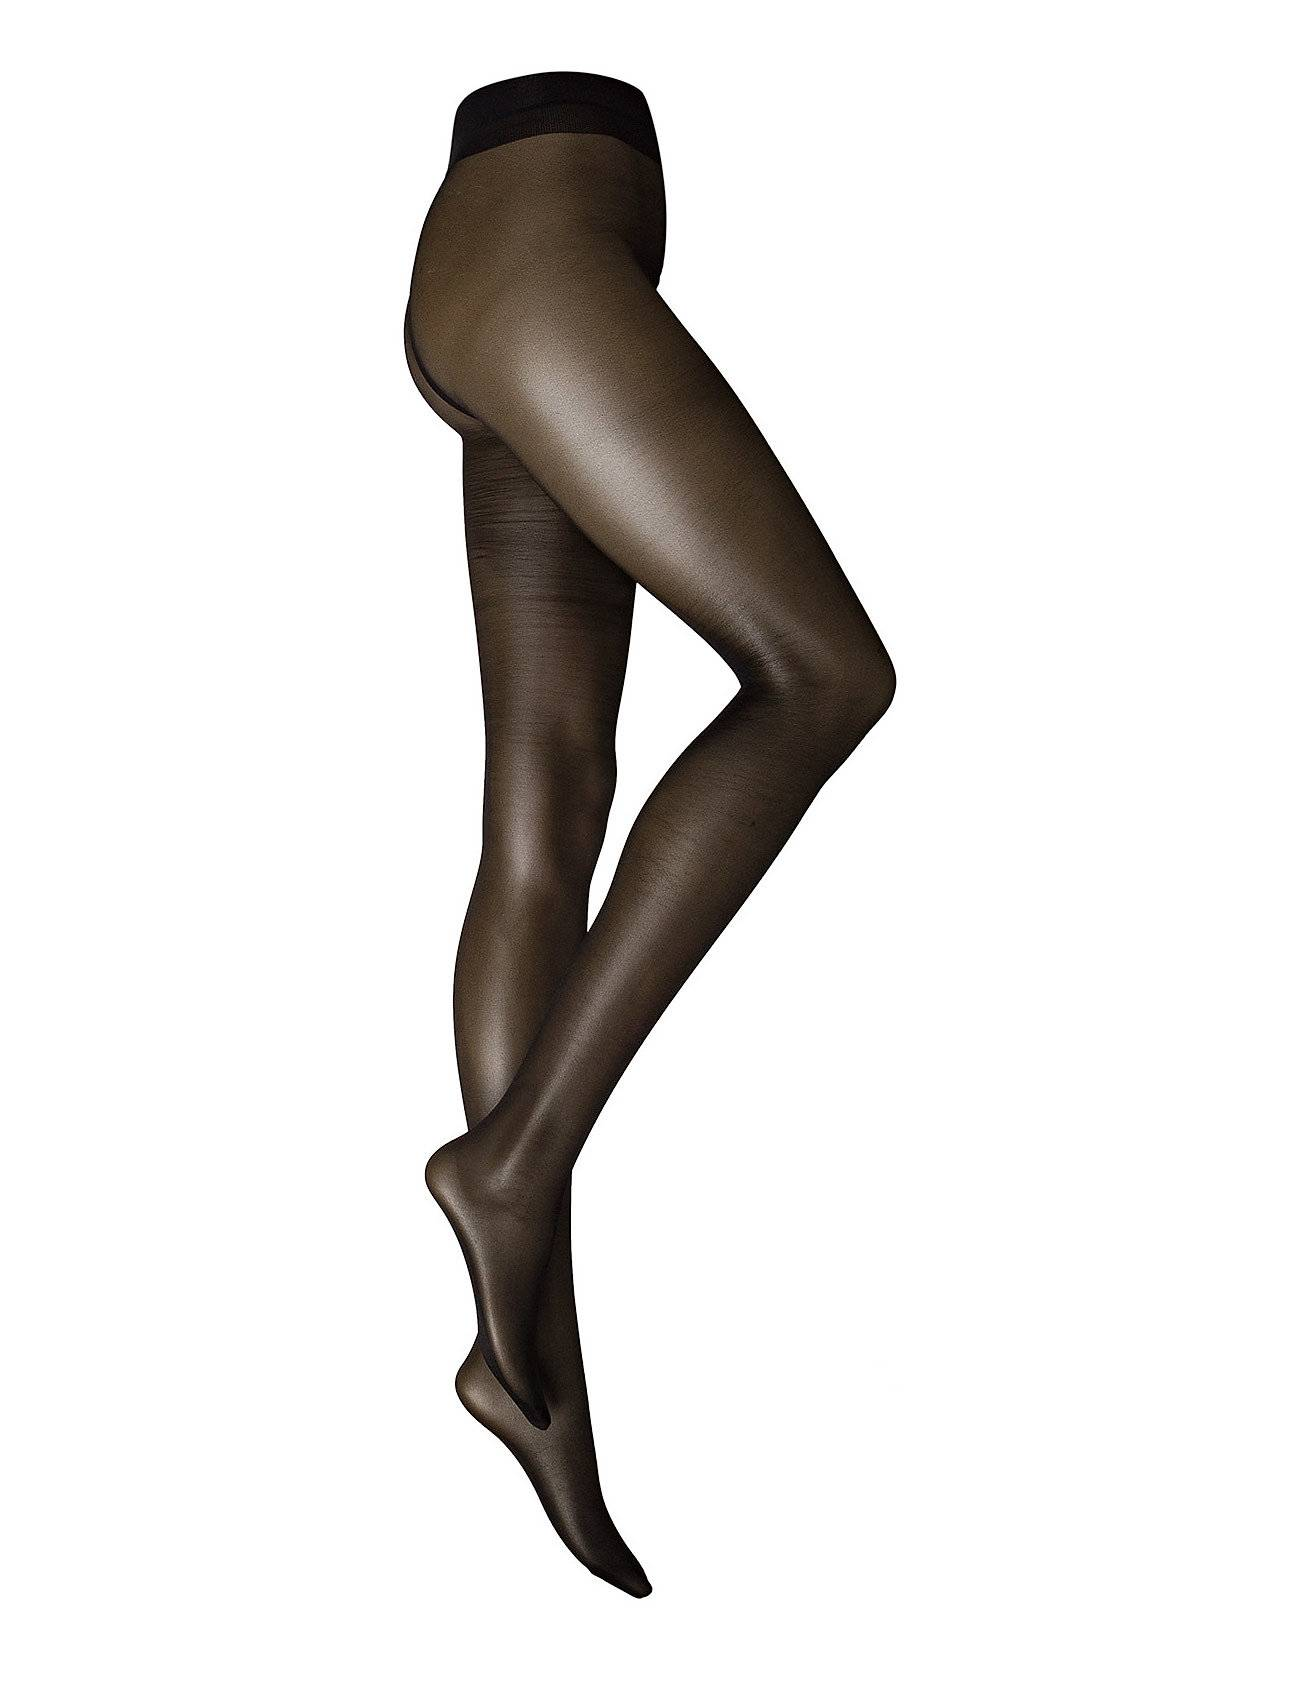 Vogue Ladies Den Pantyhose, Sensual Touch 20den